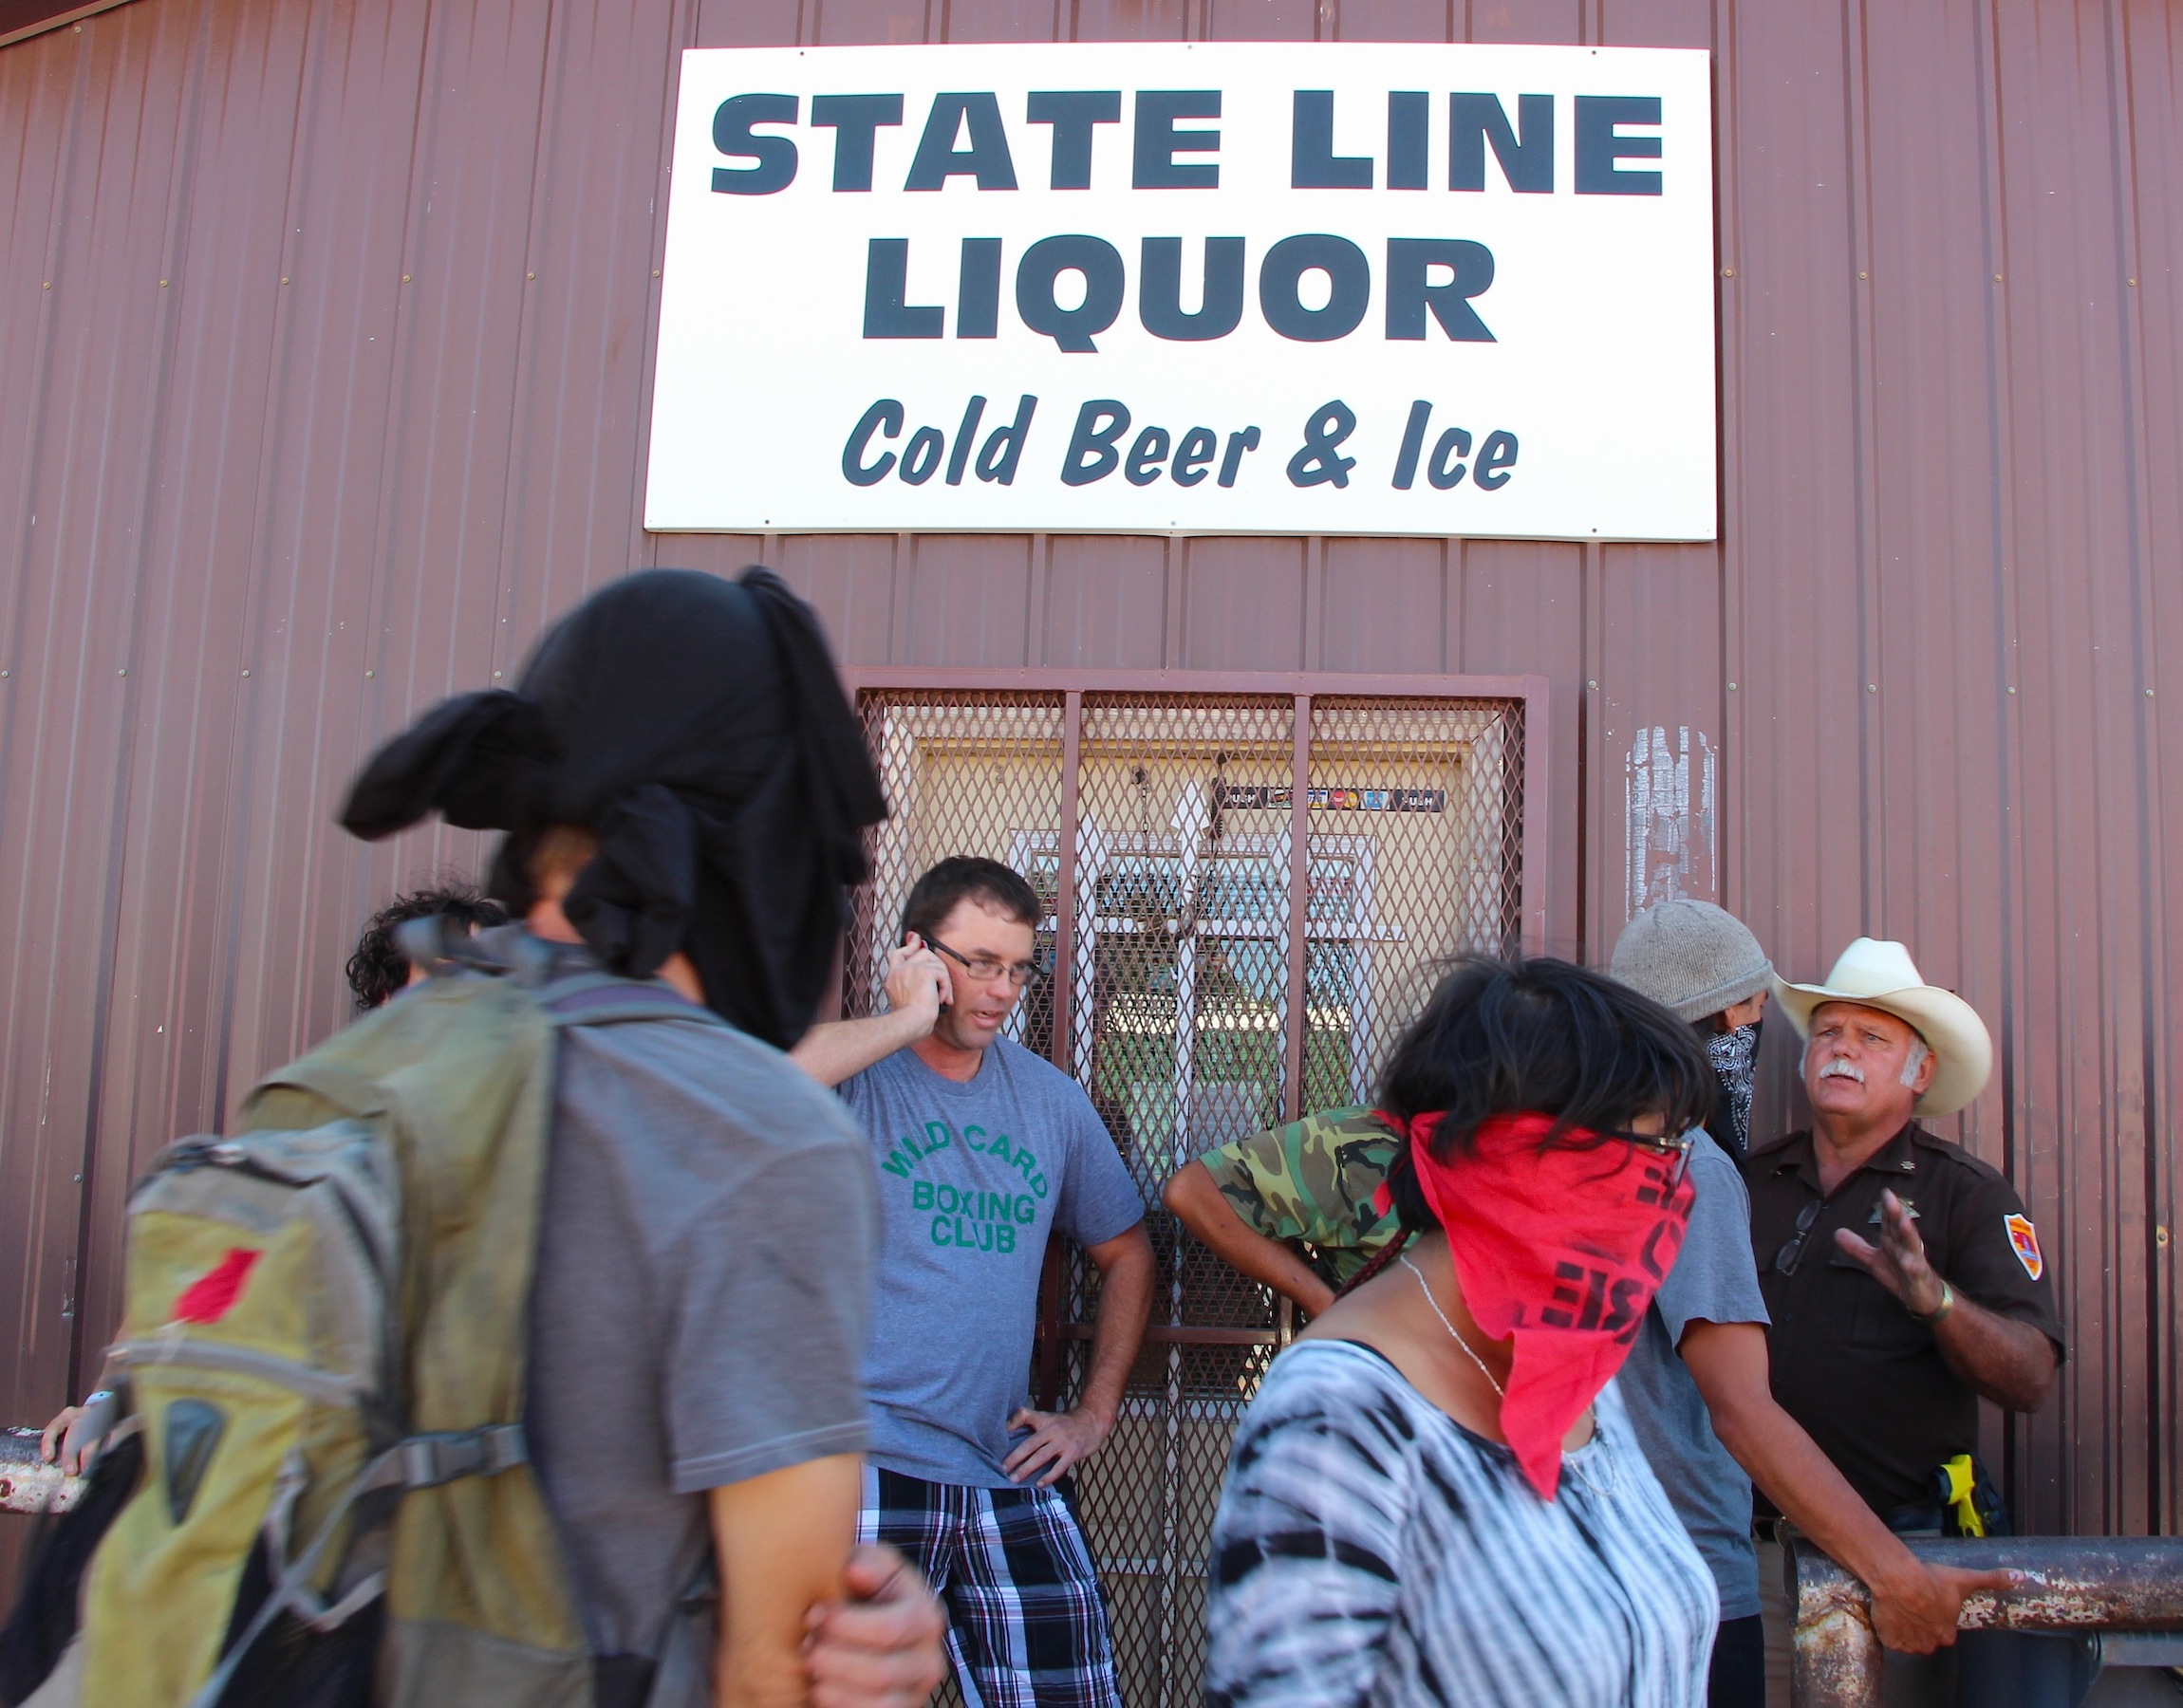 Nebraska county backs liquor licenses in reservation border town